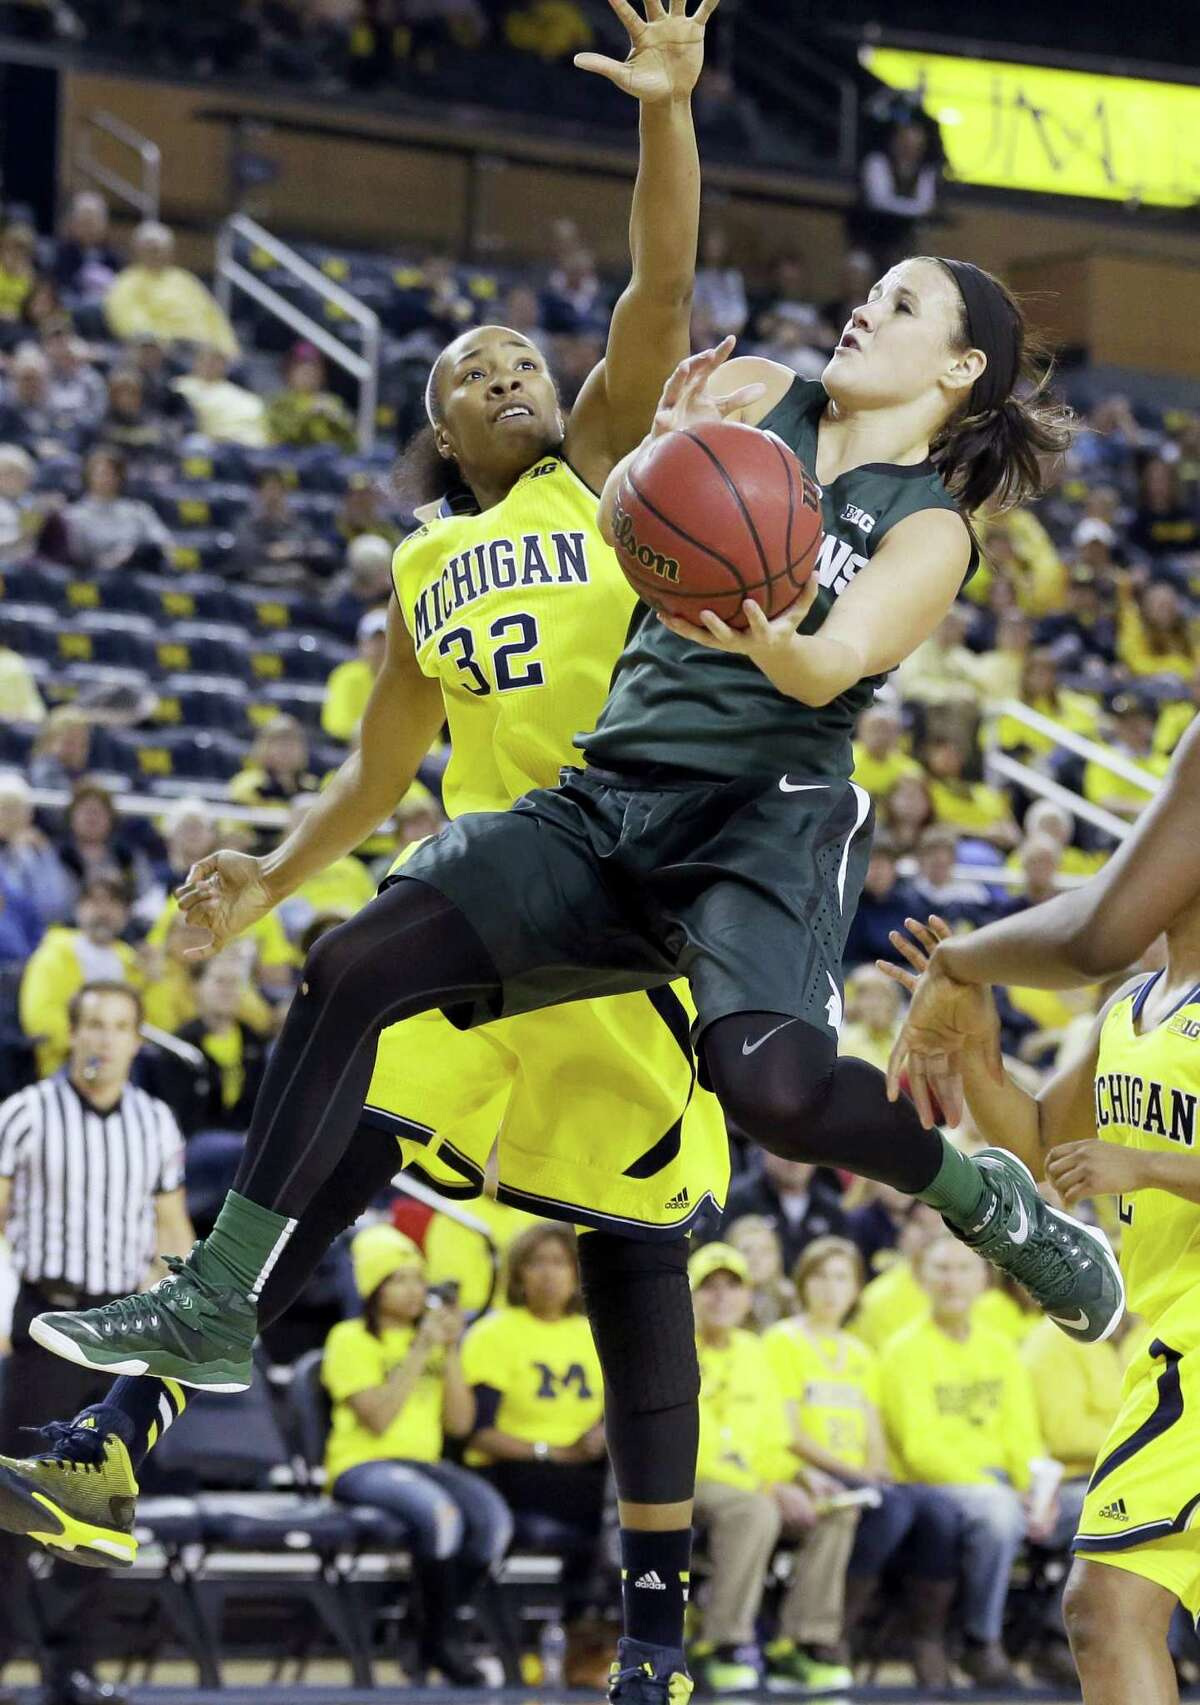 Michigan State guard Tori Jankoska, right, makes a layup while defended by Michigan forward Kelsey Mitchell (32) during the second half of an NCAA college basketball game in Ann Arbor, Mich. on Jan. 4, 2015. Michigan defeated Michigan State 74-65.